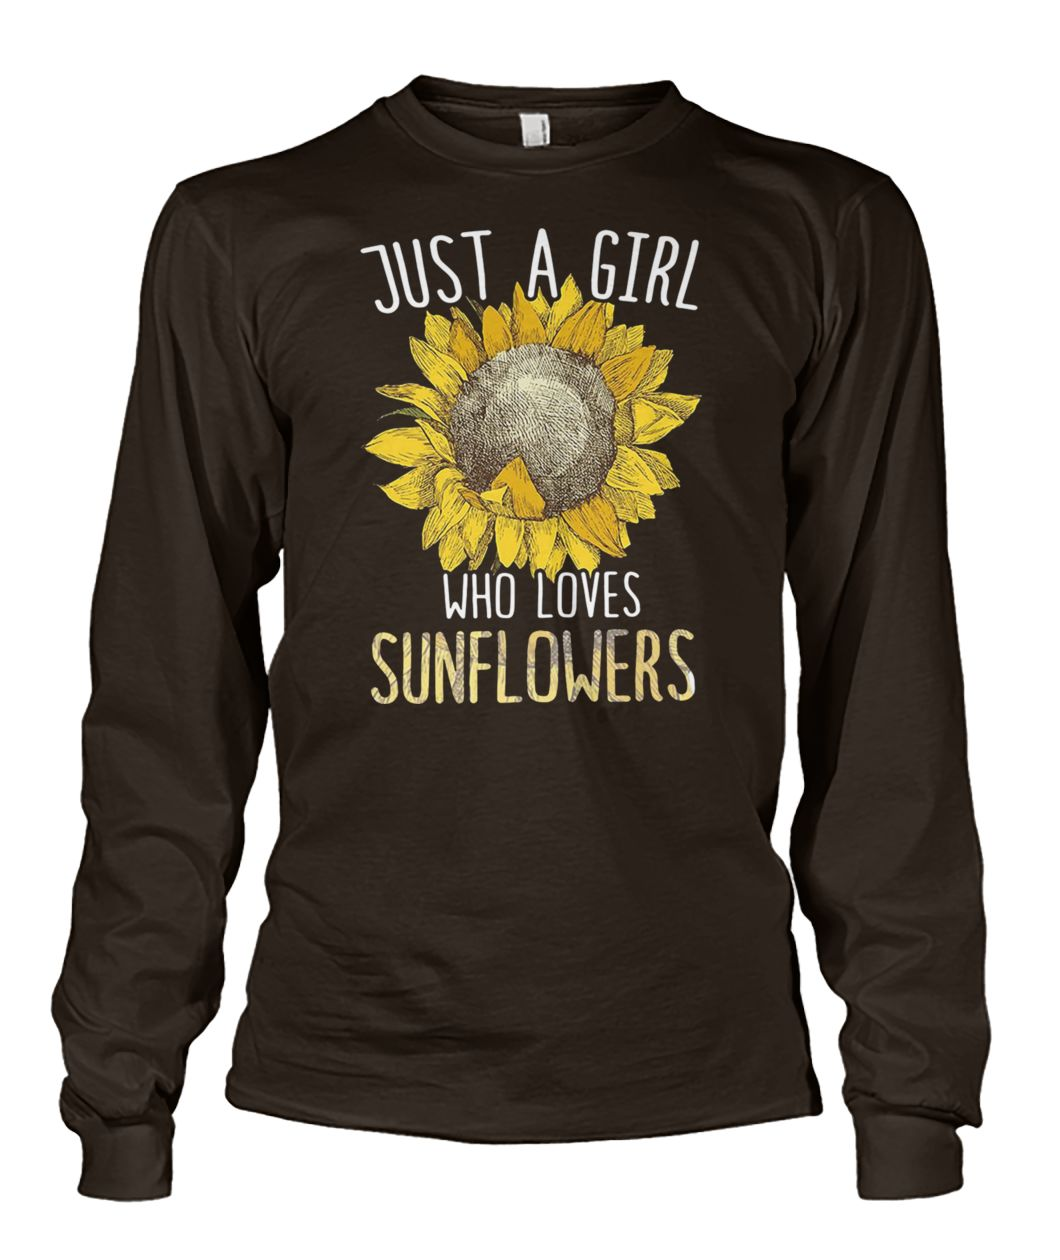 Just a girl who loves sunflowers unisex long sleeve